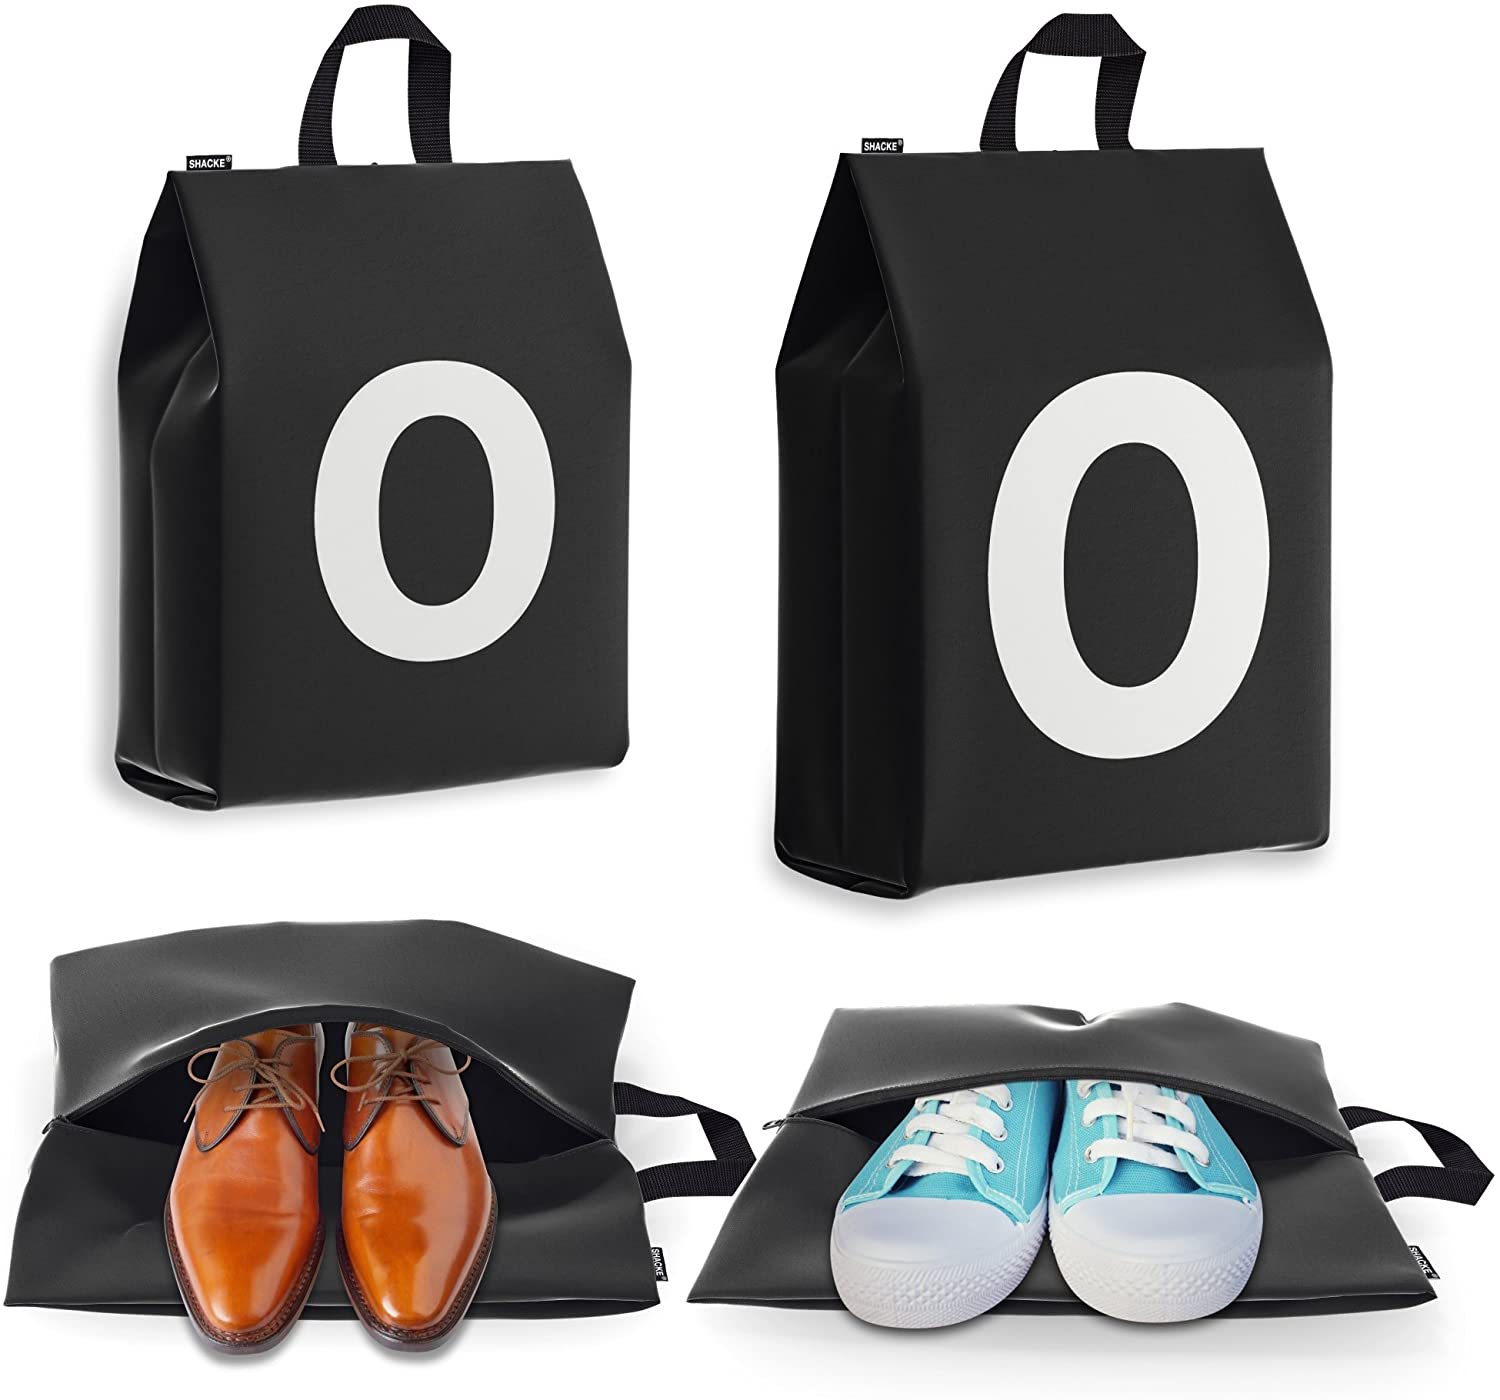 Shoe Bags for Travel for Men and Women - Personalized Initial - 4pk